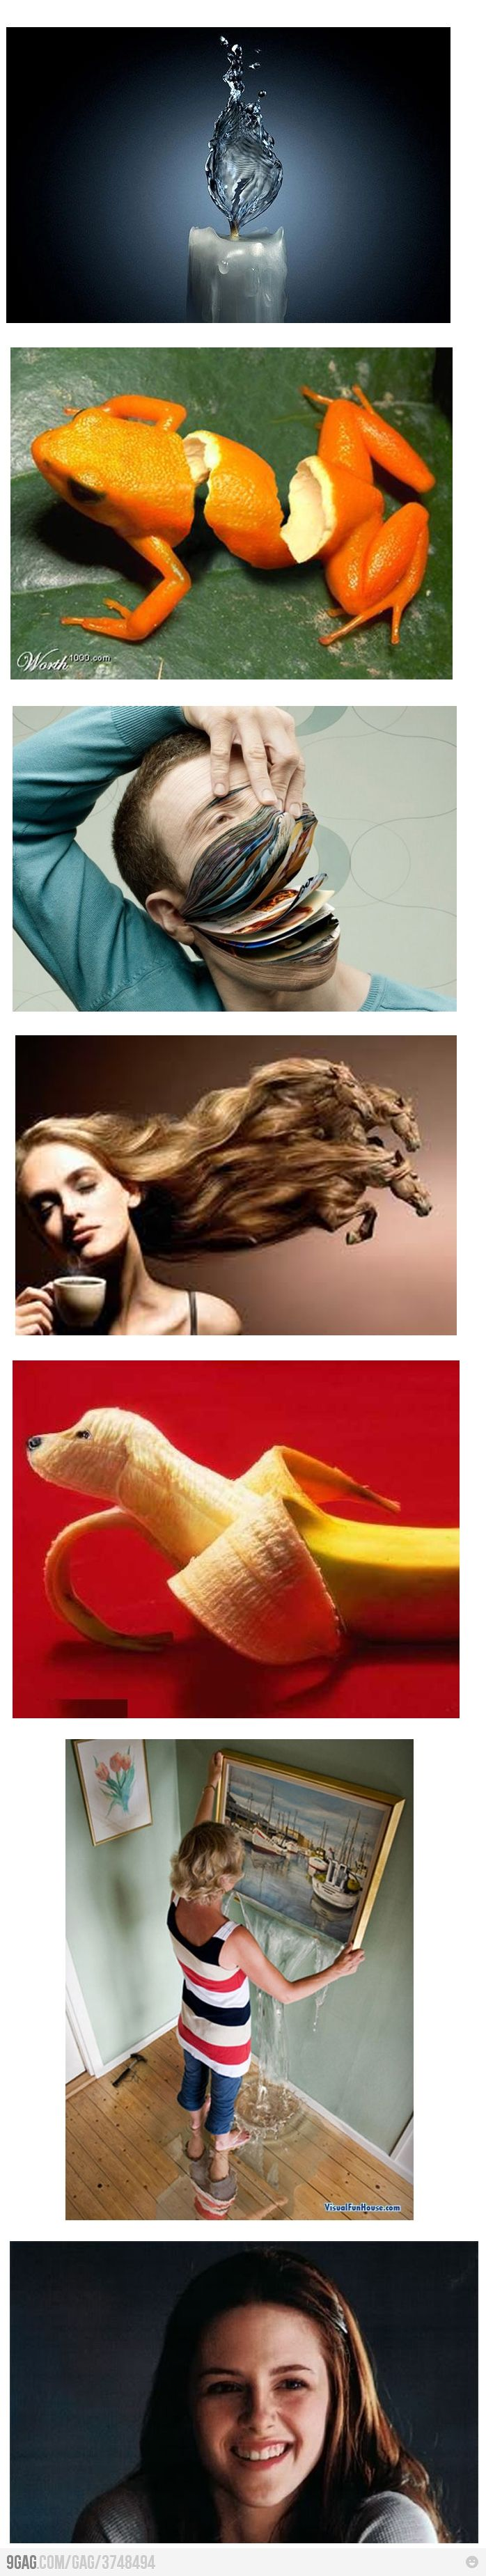 Photoshop inspiration. Makes me wanna get back into photo manipulation challenges.